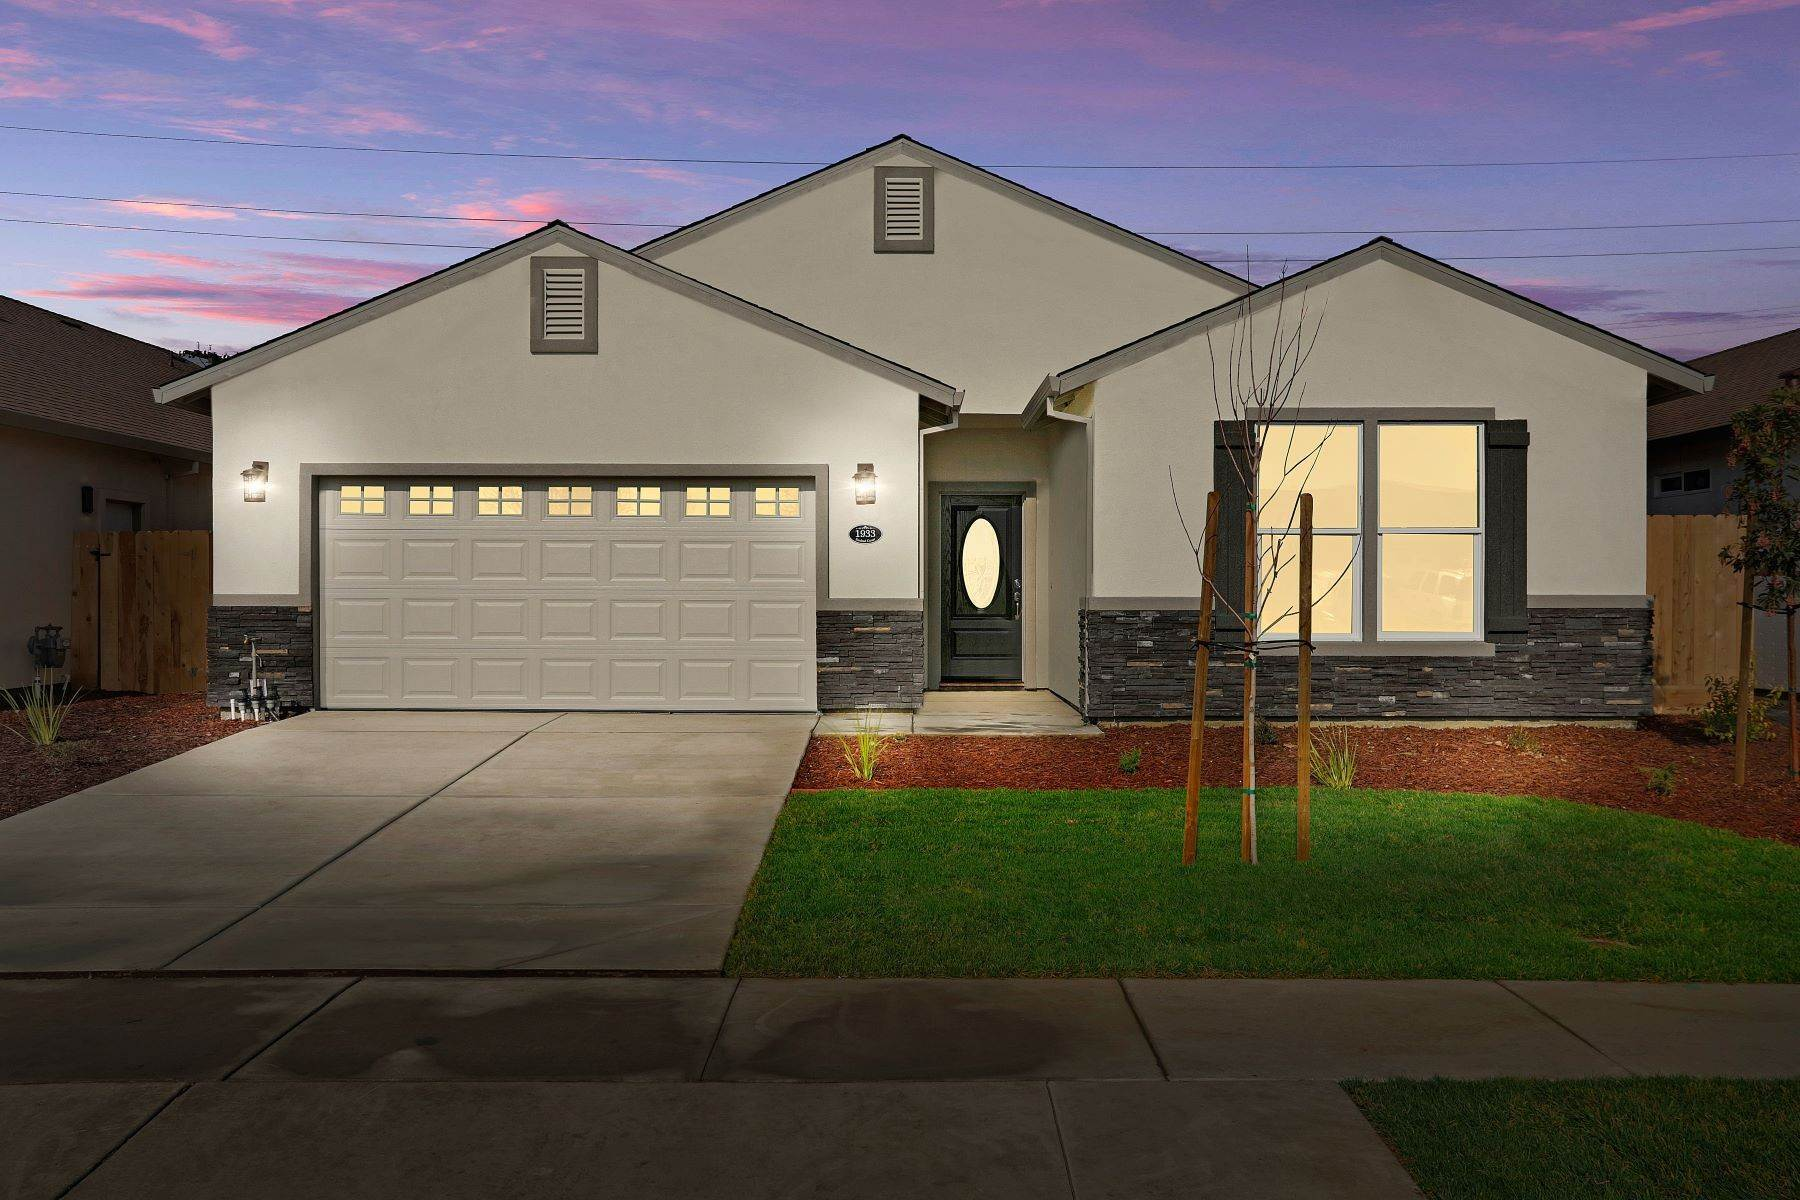 Single Family Homes for Sale at 1958 Simbad Court, Stockton 1958 Simbad Court Stockton, California 95206 United States